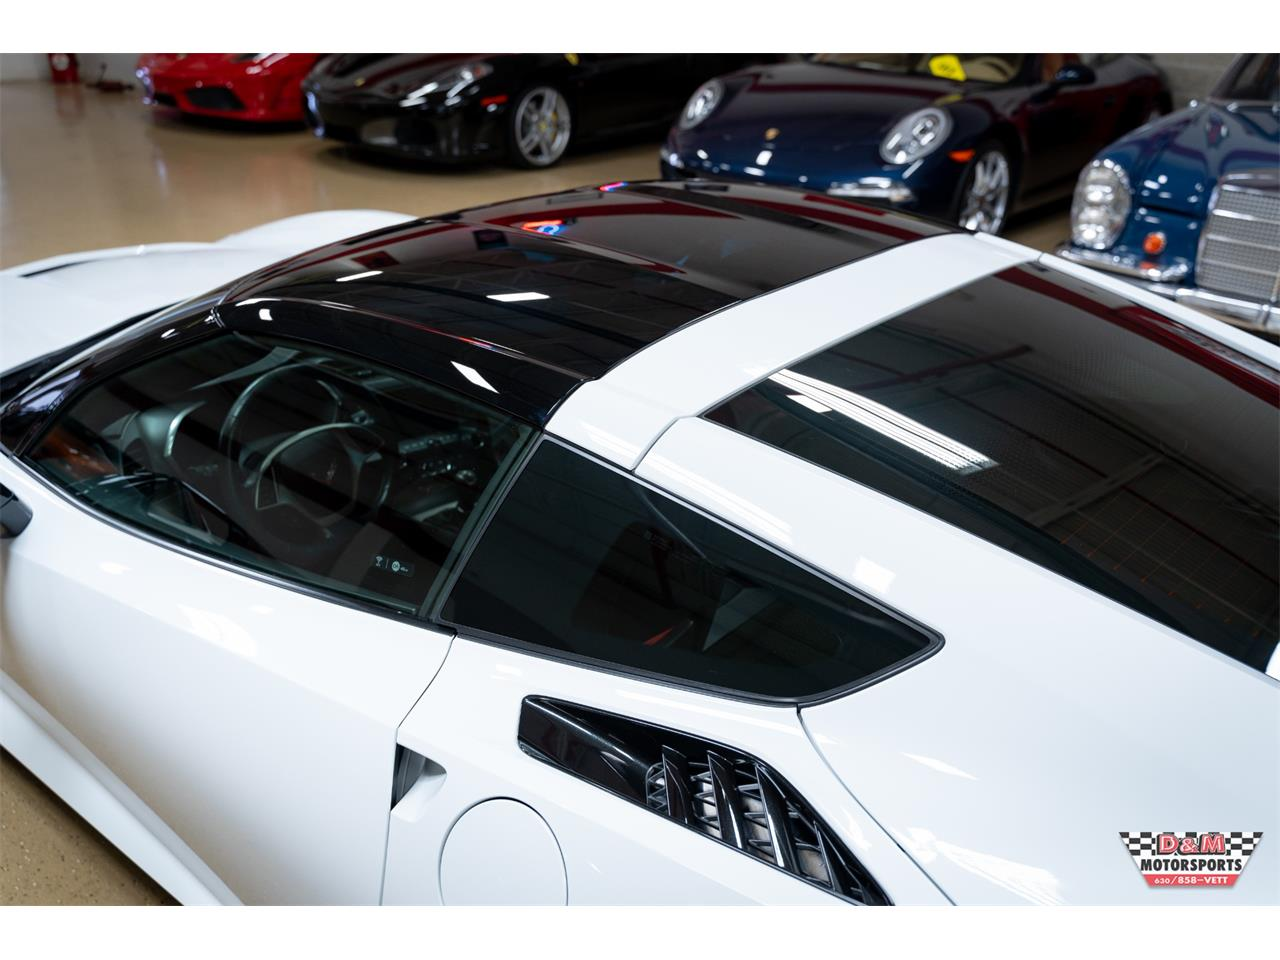 Large Picture of 2016 Chevrolet Corvette - $44,995.00 Offered by D & M Motorsports - R2HE